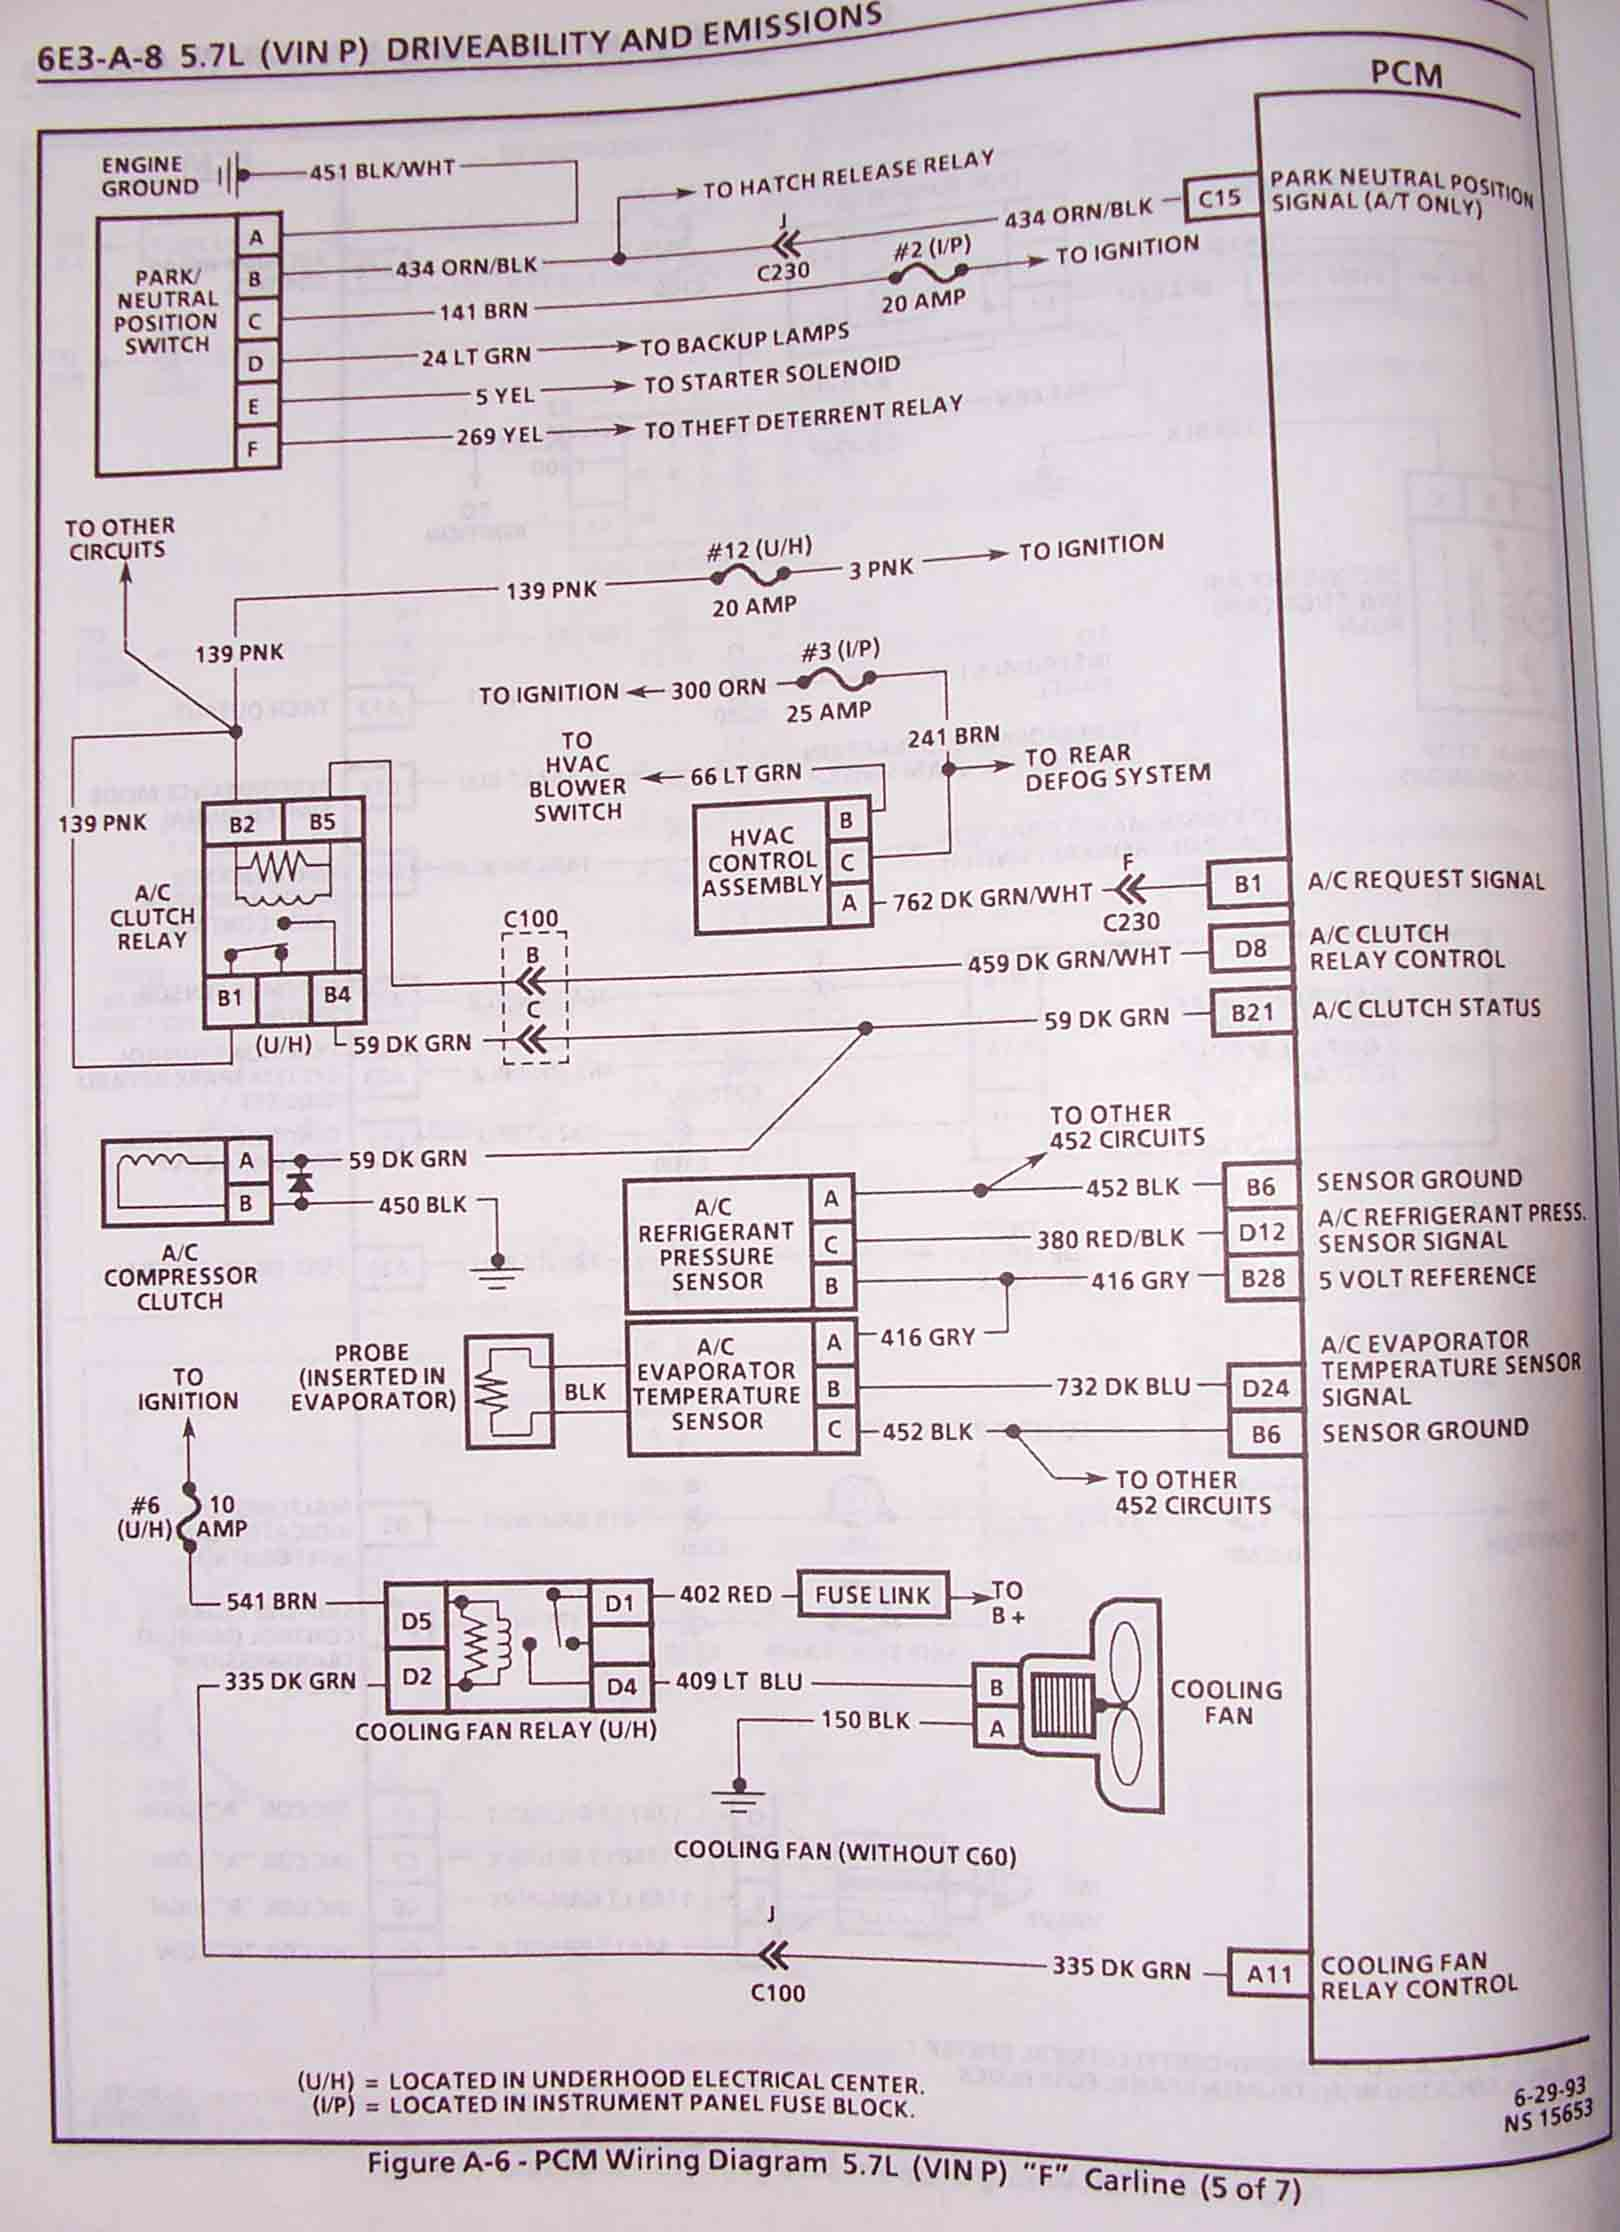 1994 Camaro Wiring Diagram Guide And Troubleshooting Of Chevrolet Radio Harness 1995 F Body Wire Schematics Rh Lt1swap Com Bose